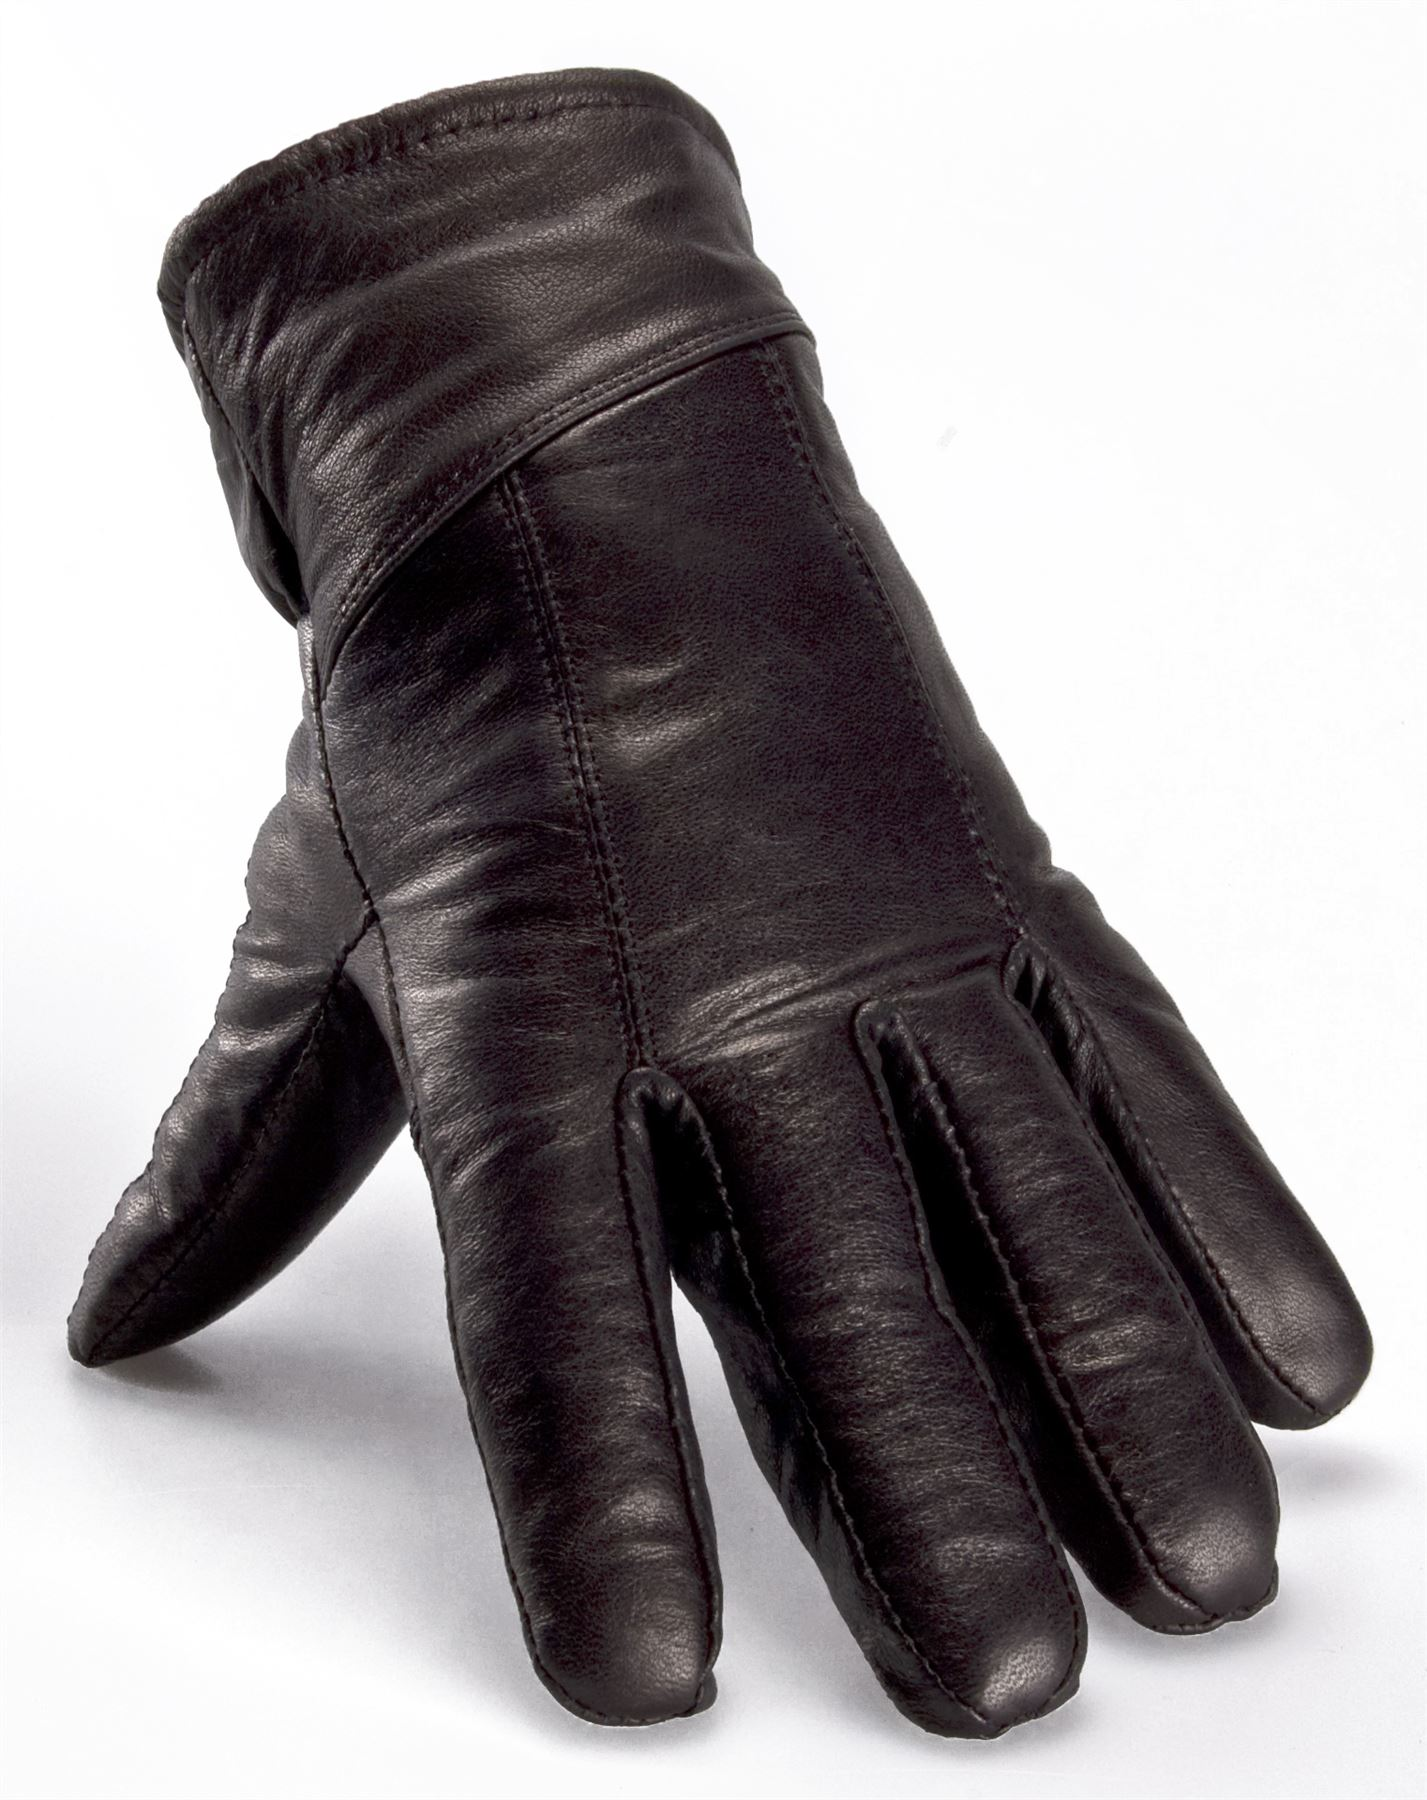 Men's Leather Gloves. Showing 48 of results that match your query. Search Product Result. Product - Alpine Swiss Mens Touch Screen Gloves Leather Thermal Lined Phone Texting Gloves. Product - Mens Warm Winter Gloves Dress Gloves Thermal Lining Geniune Leather BLACK, XX-Large. Product Image. Price $